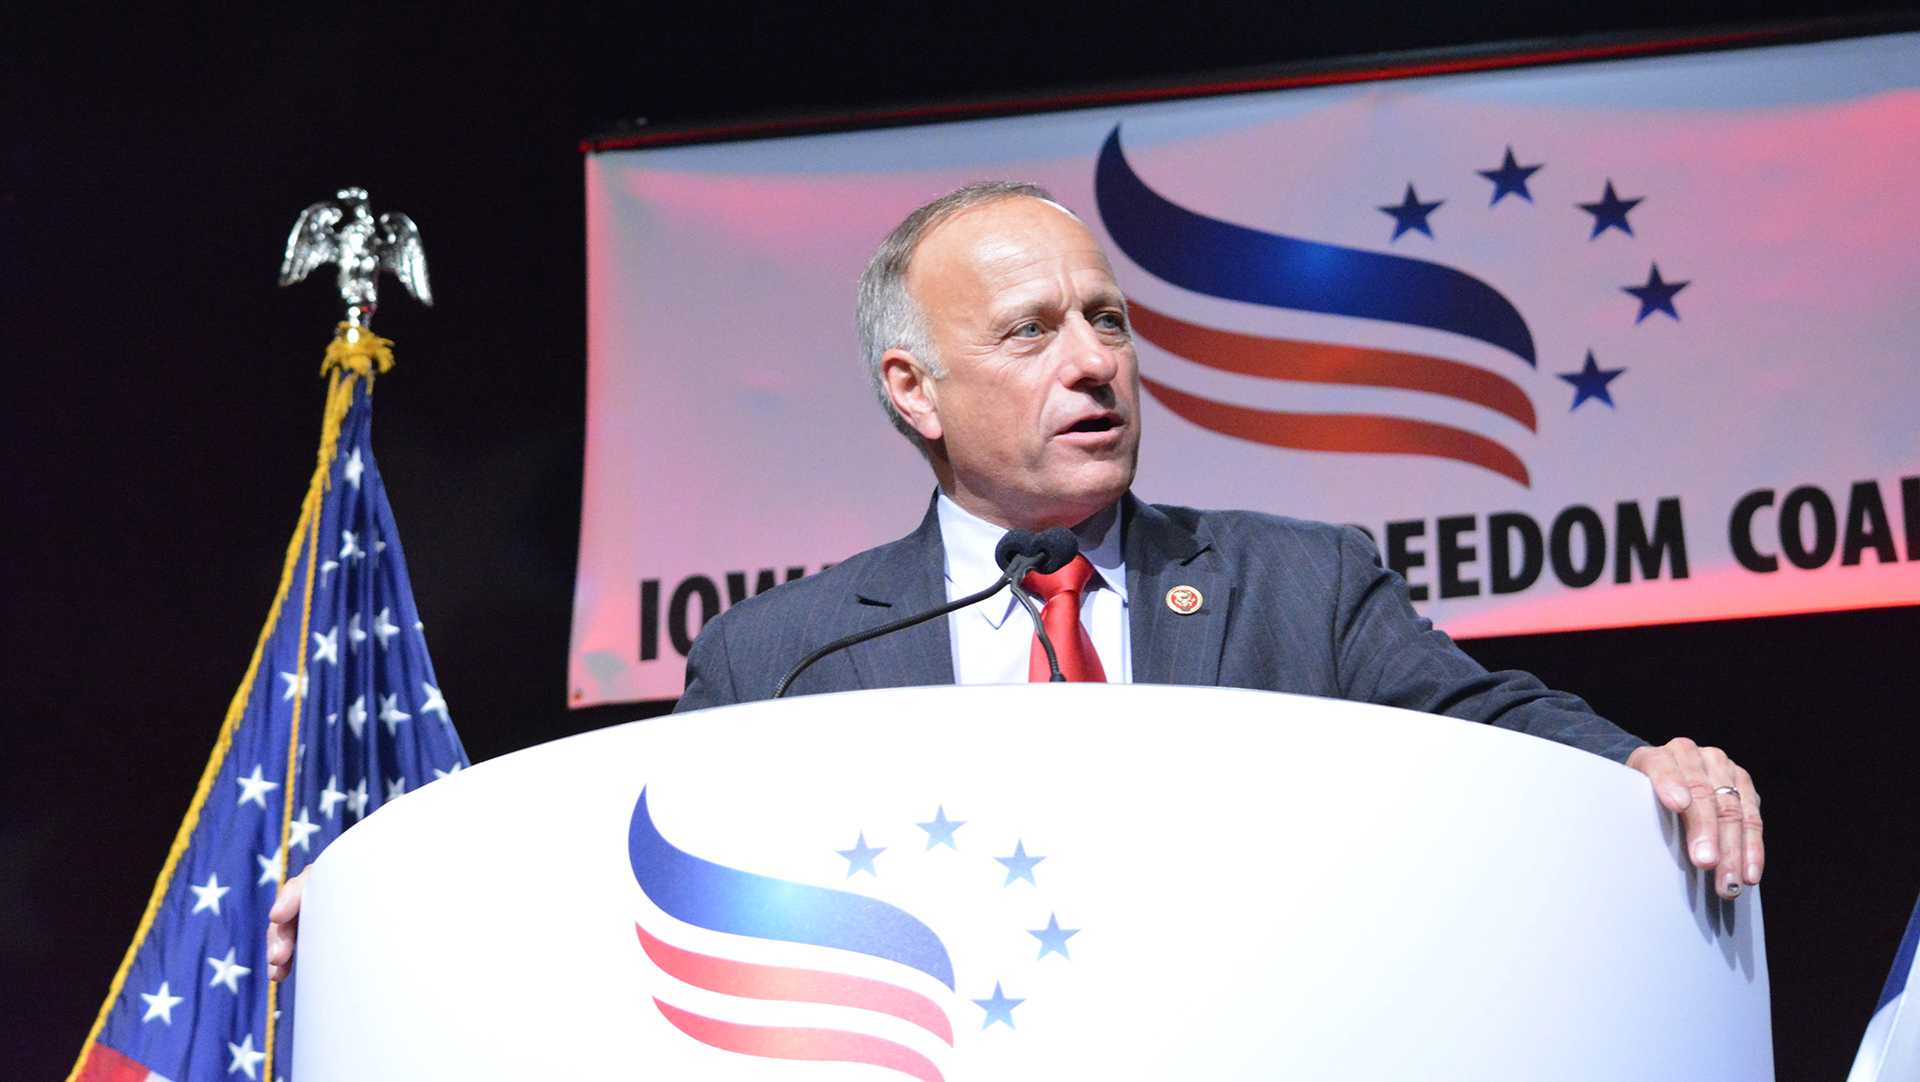 Steve King maintains seat in Congress for Iowa's 4th district